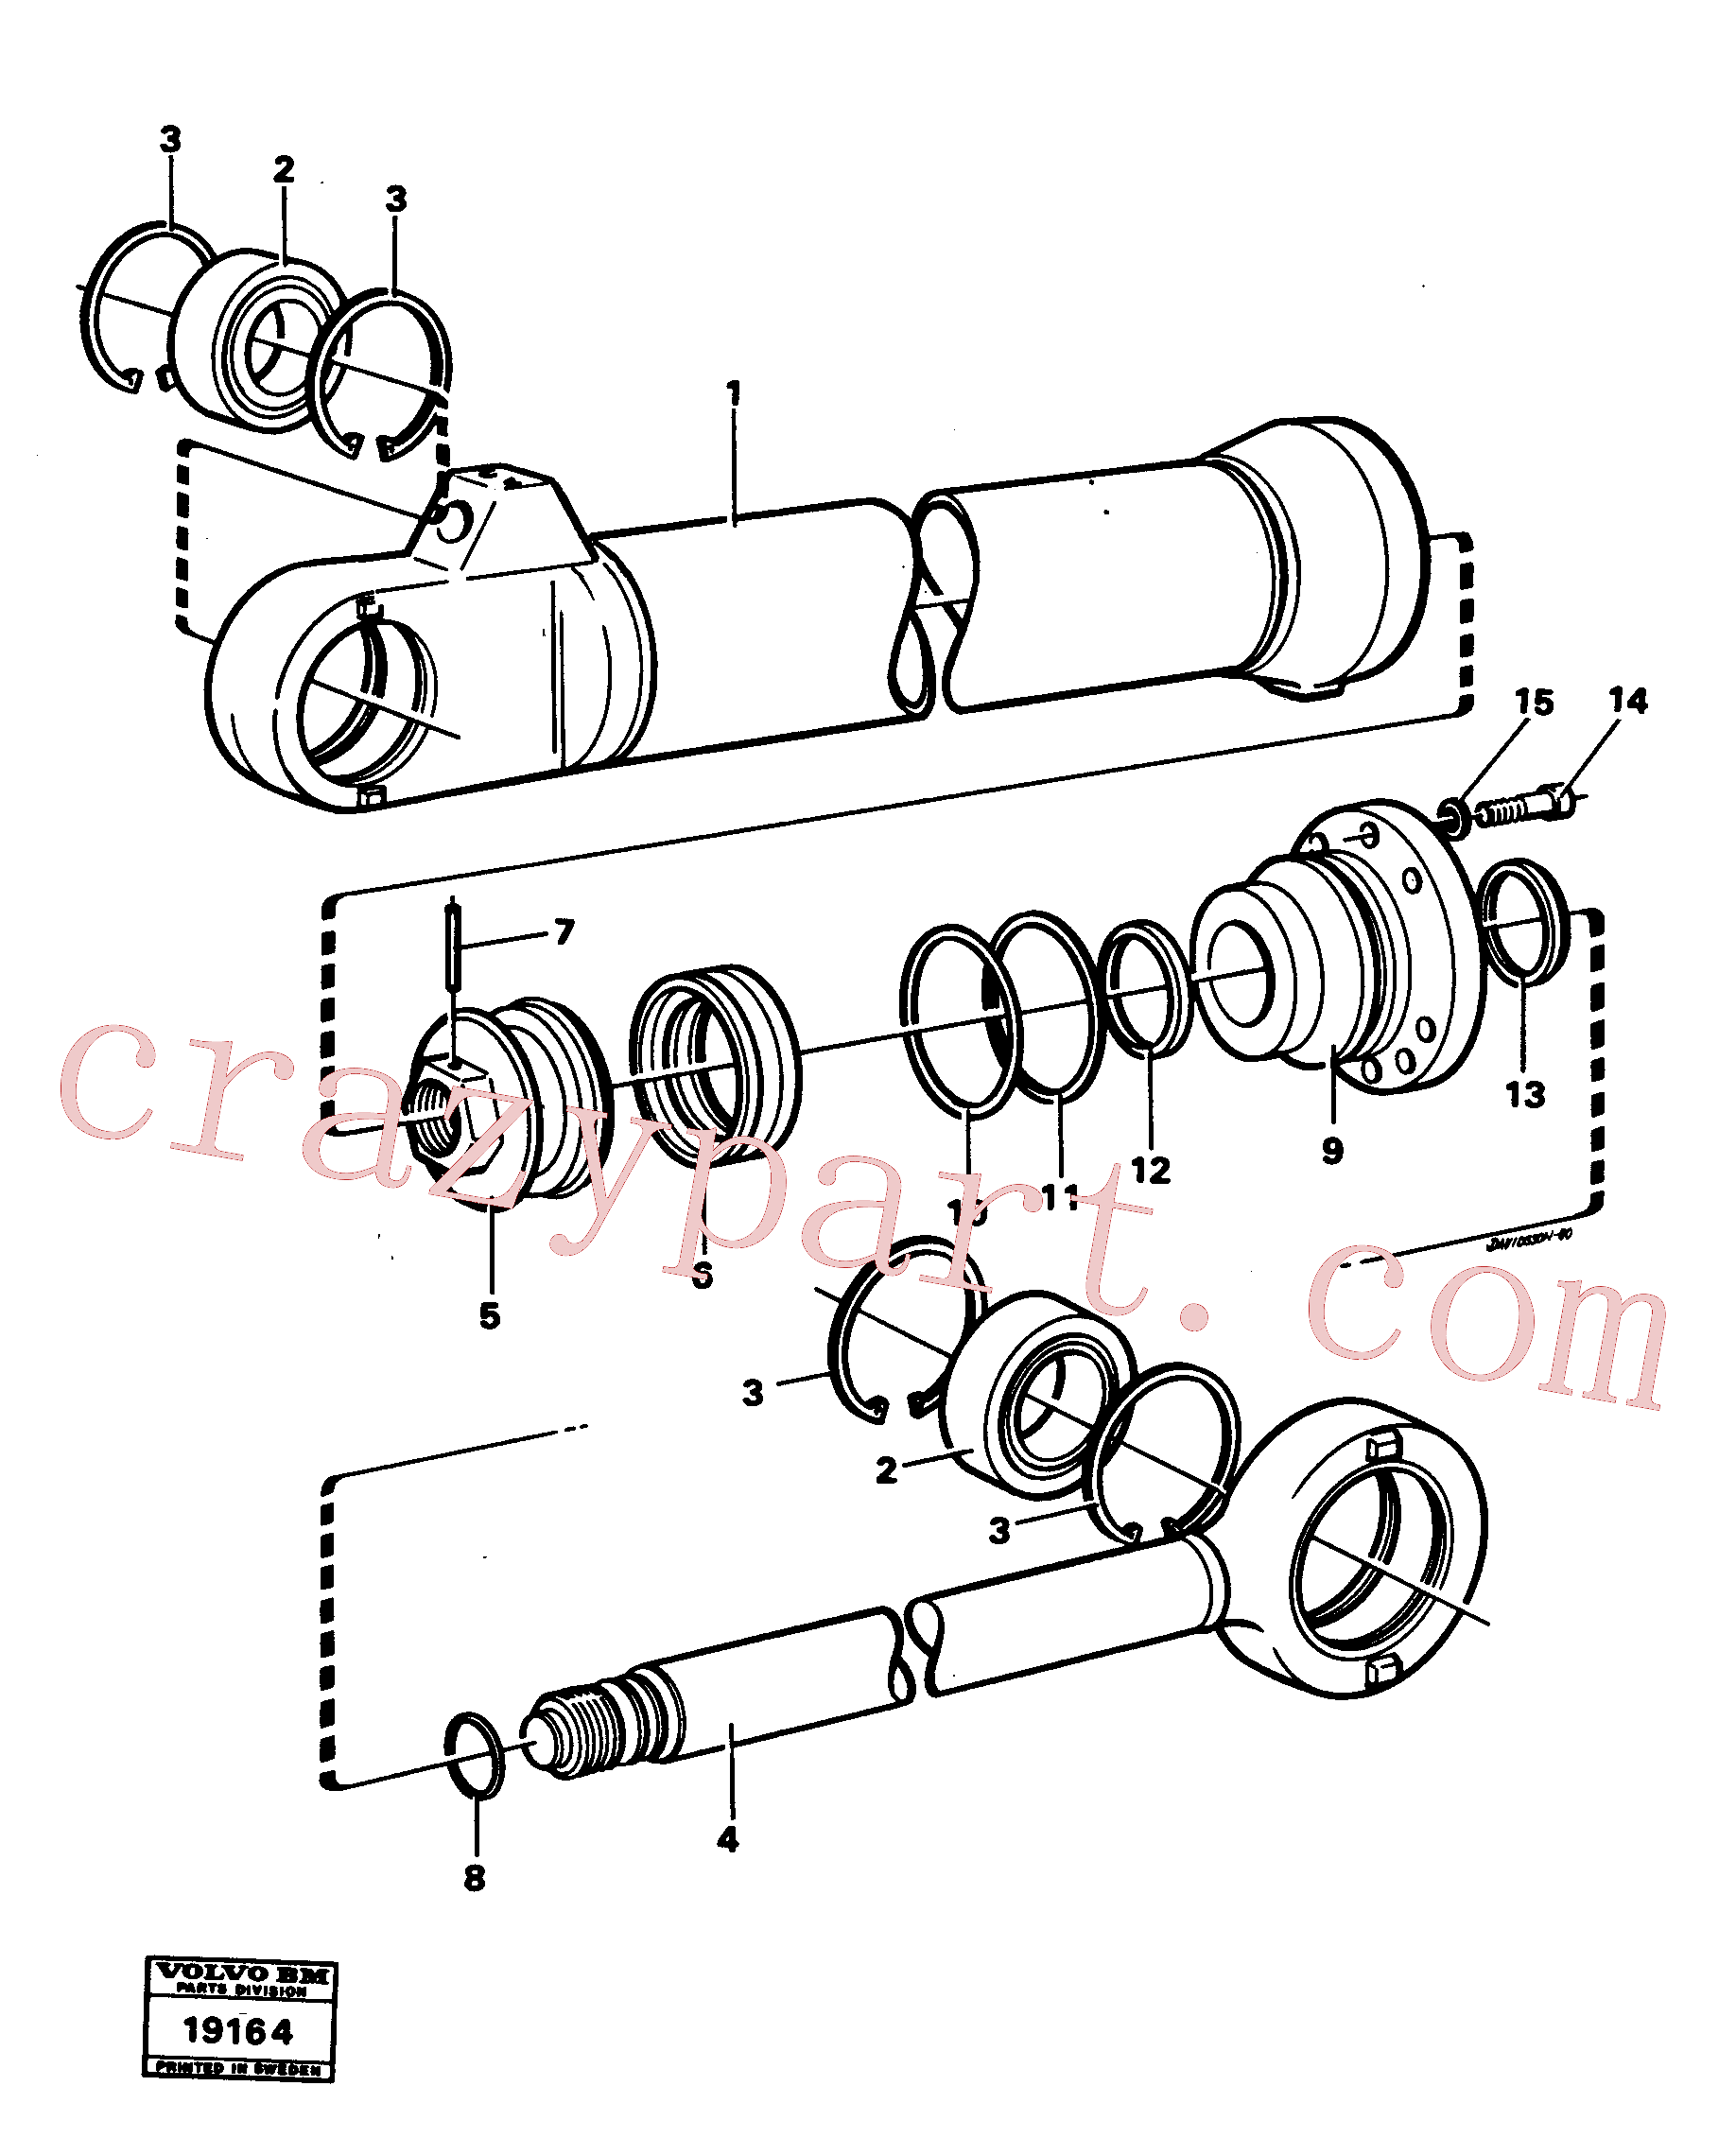 VOE184059 for Volvo Hydraulic cylinder tilting(19164 assembly)